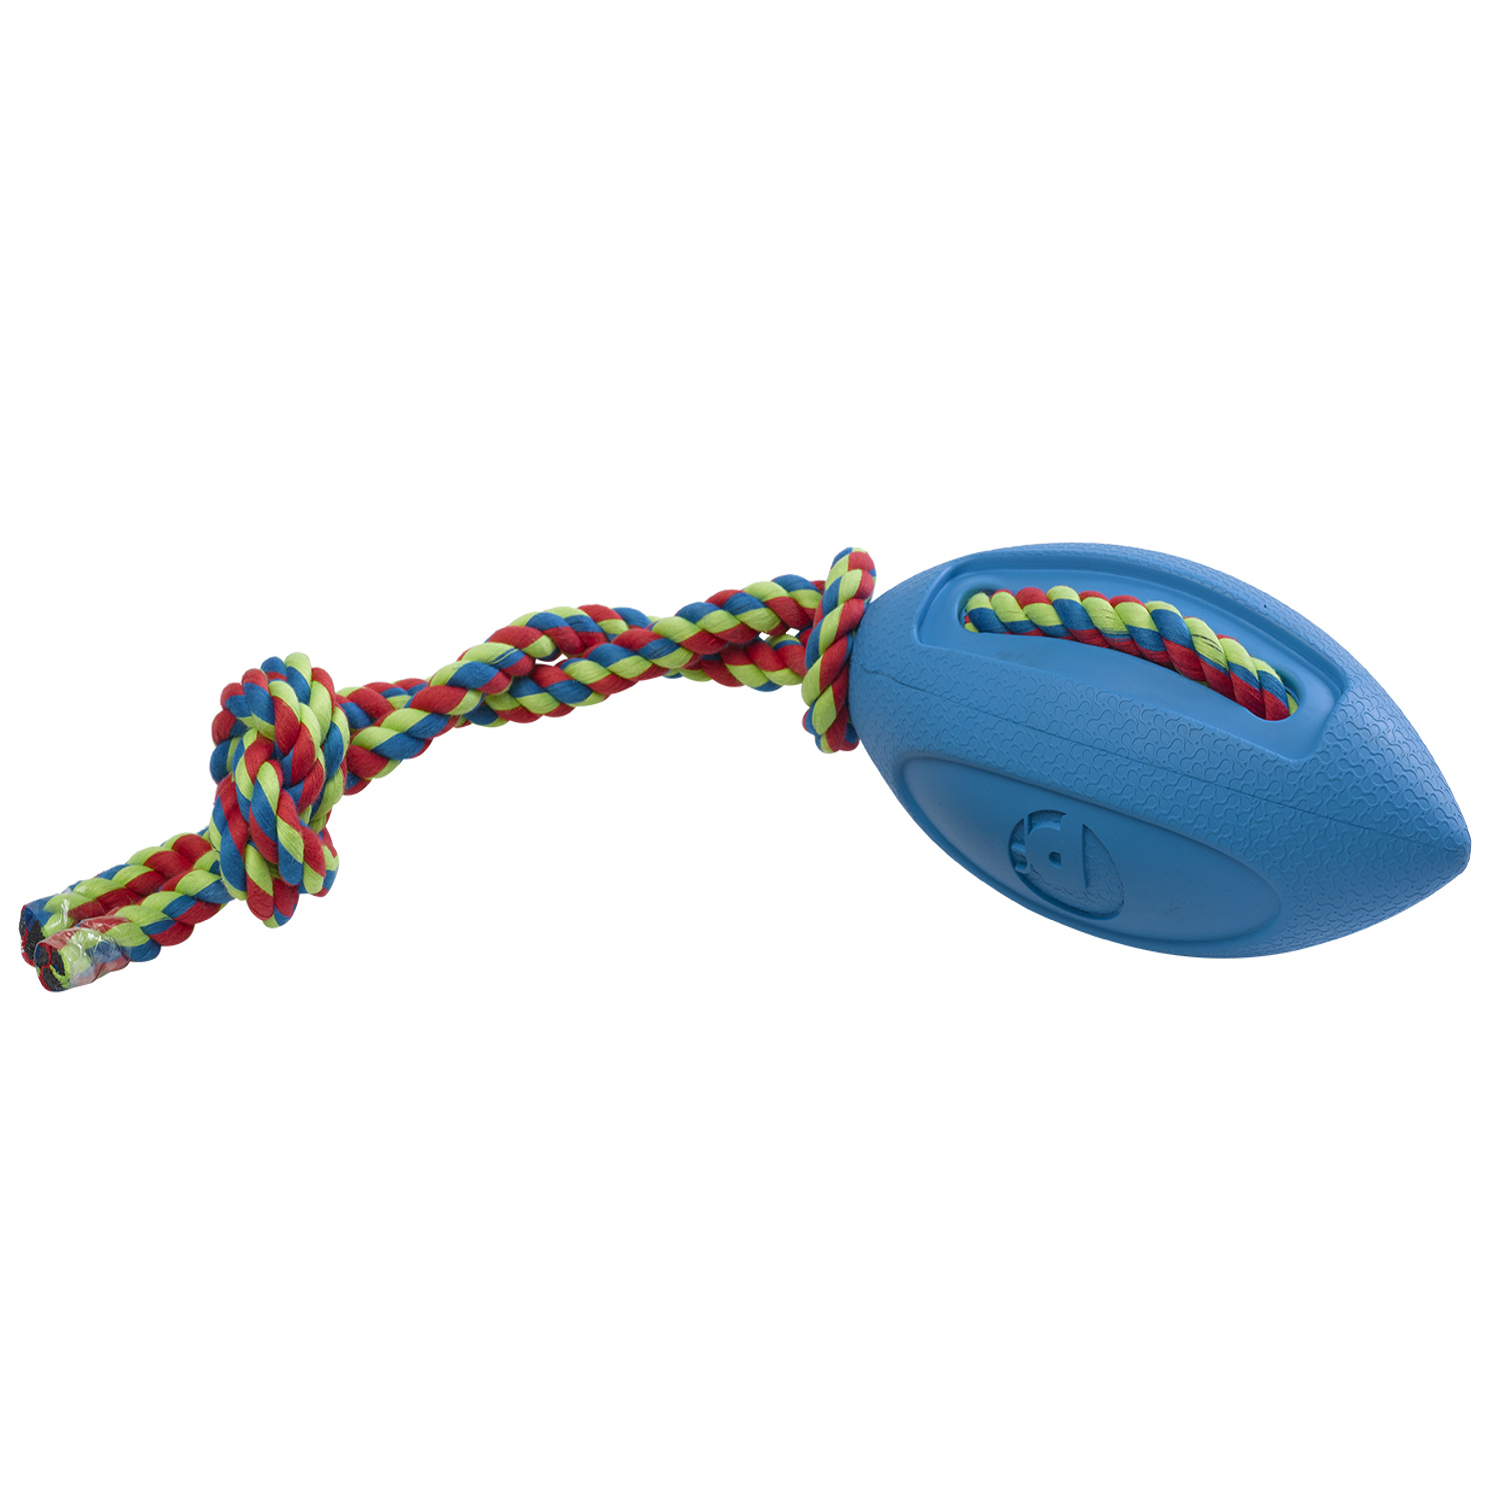 Petface Toyz Rugby Tugger Dog Puppy Tug & Chase Fun ...